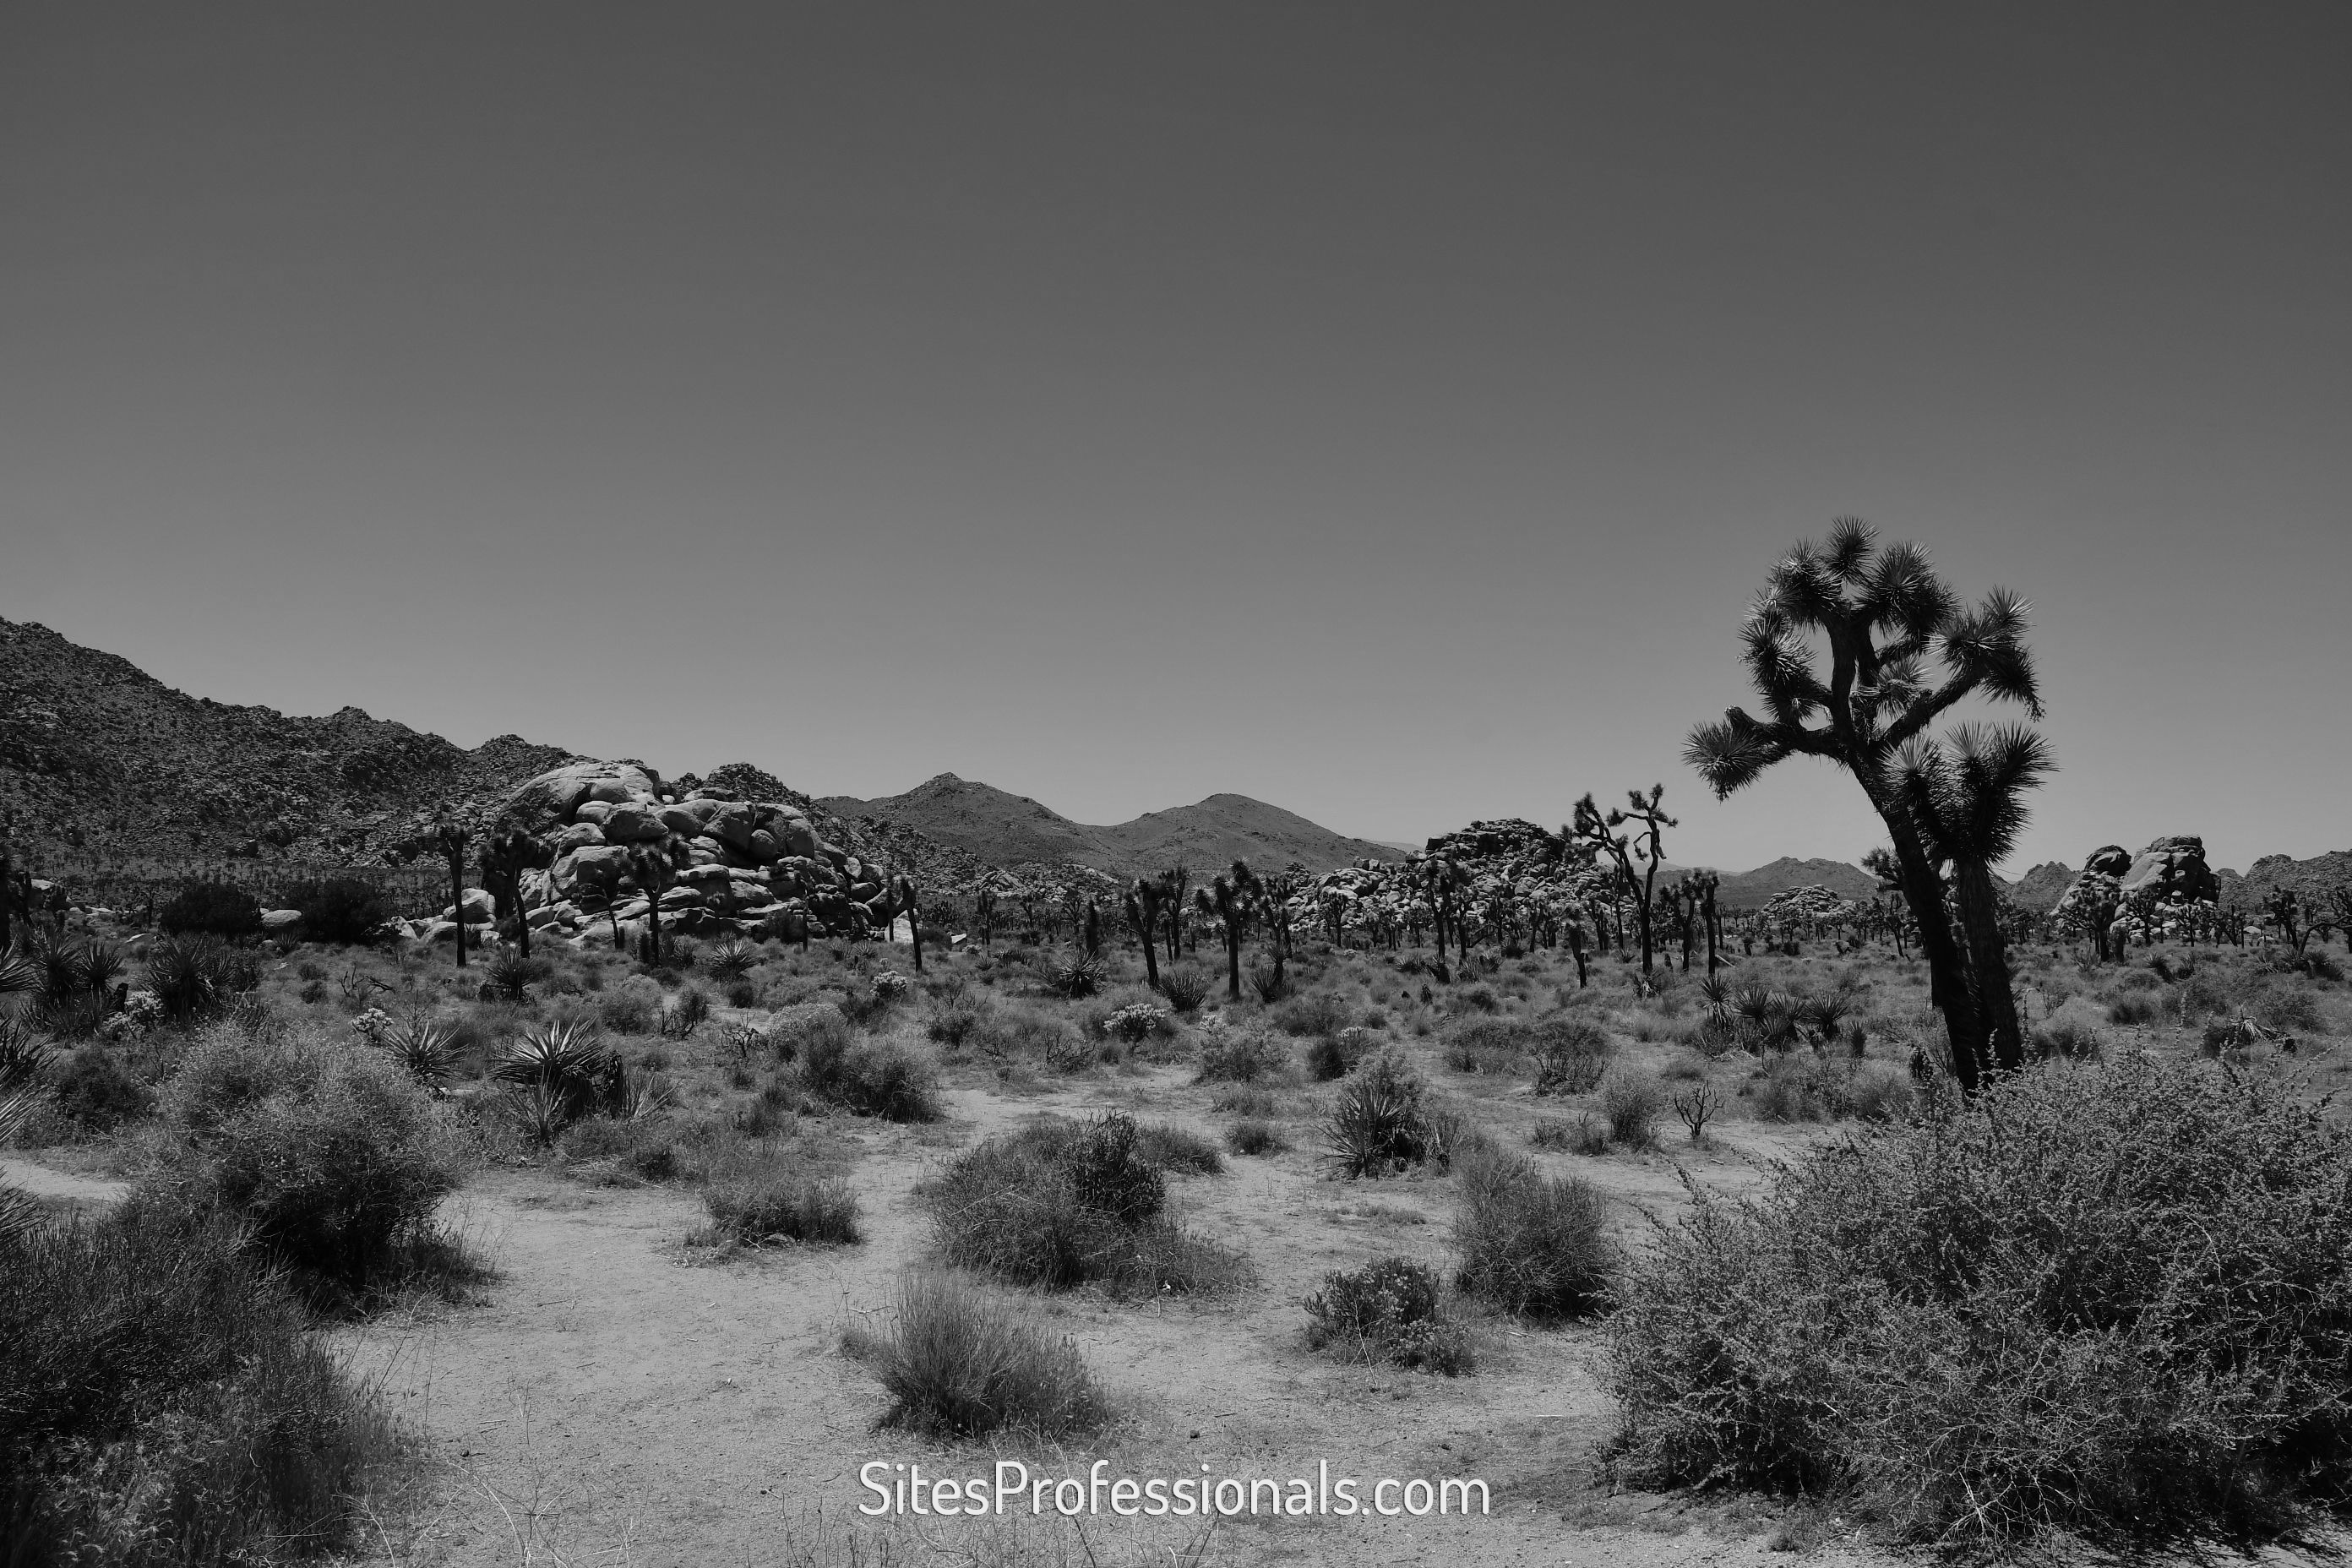 Joshua Tree picture for new psychiatrist opportunities with Sites Professionals